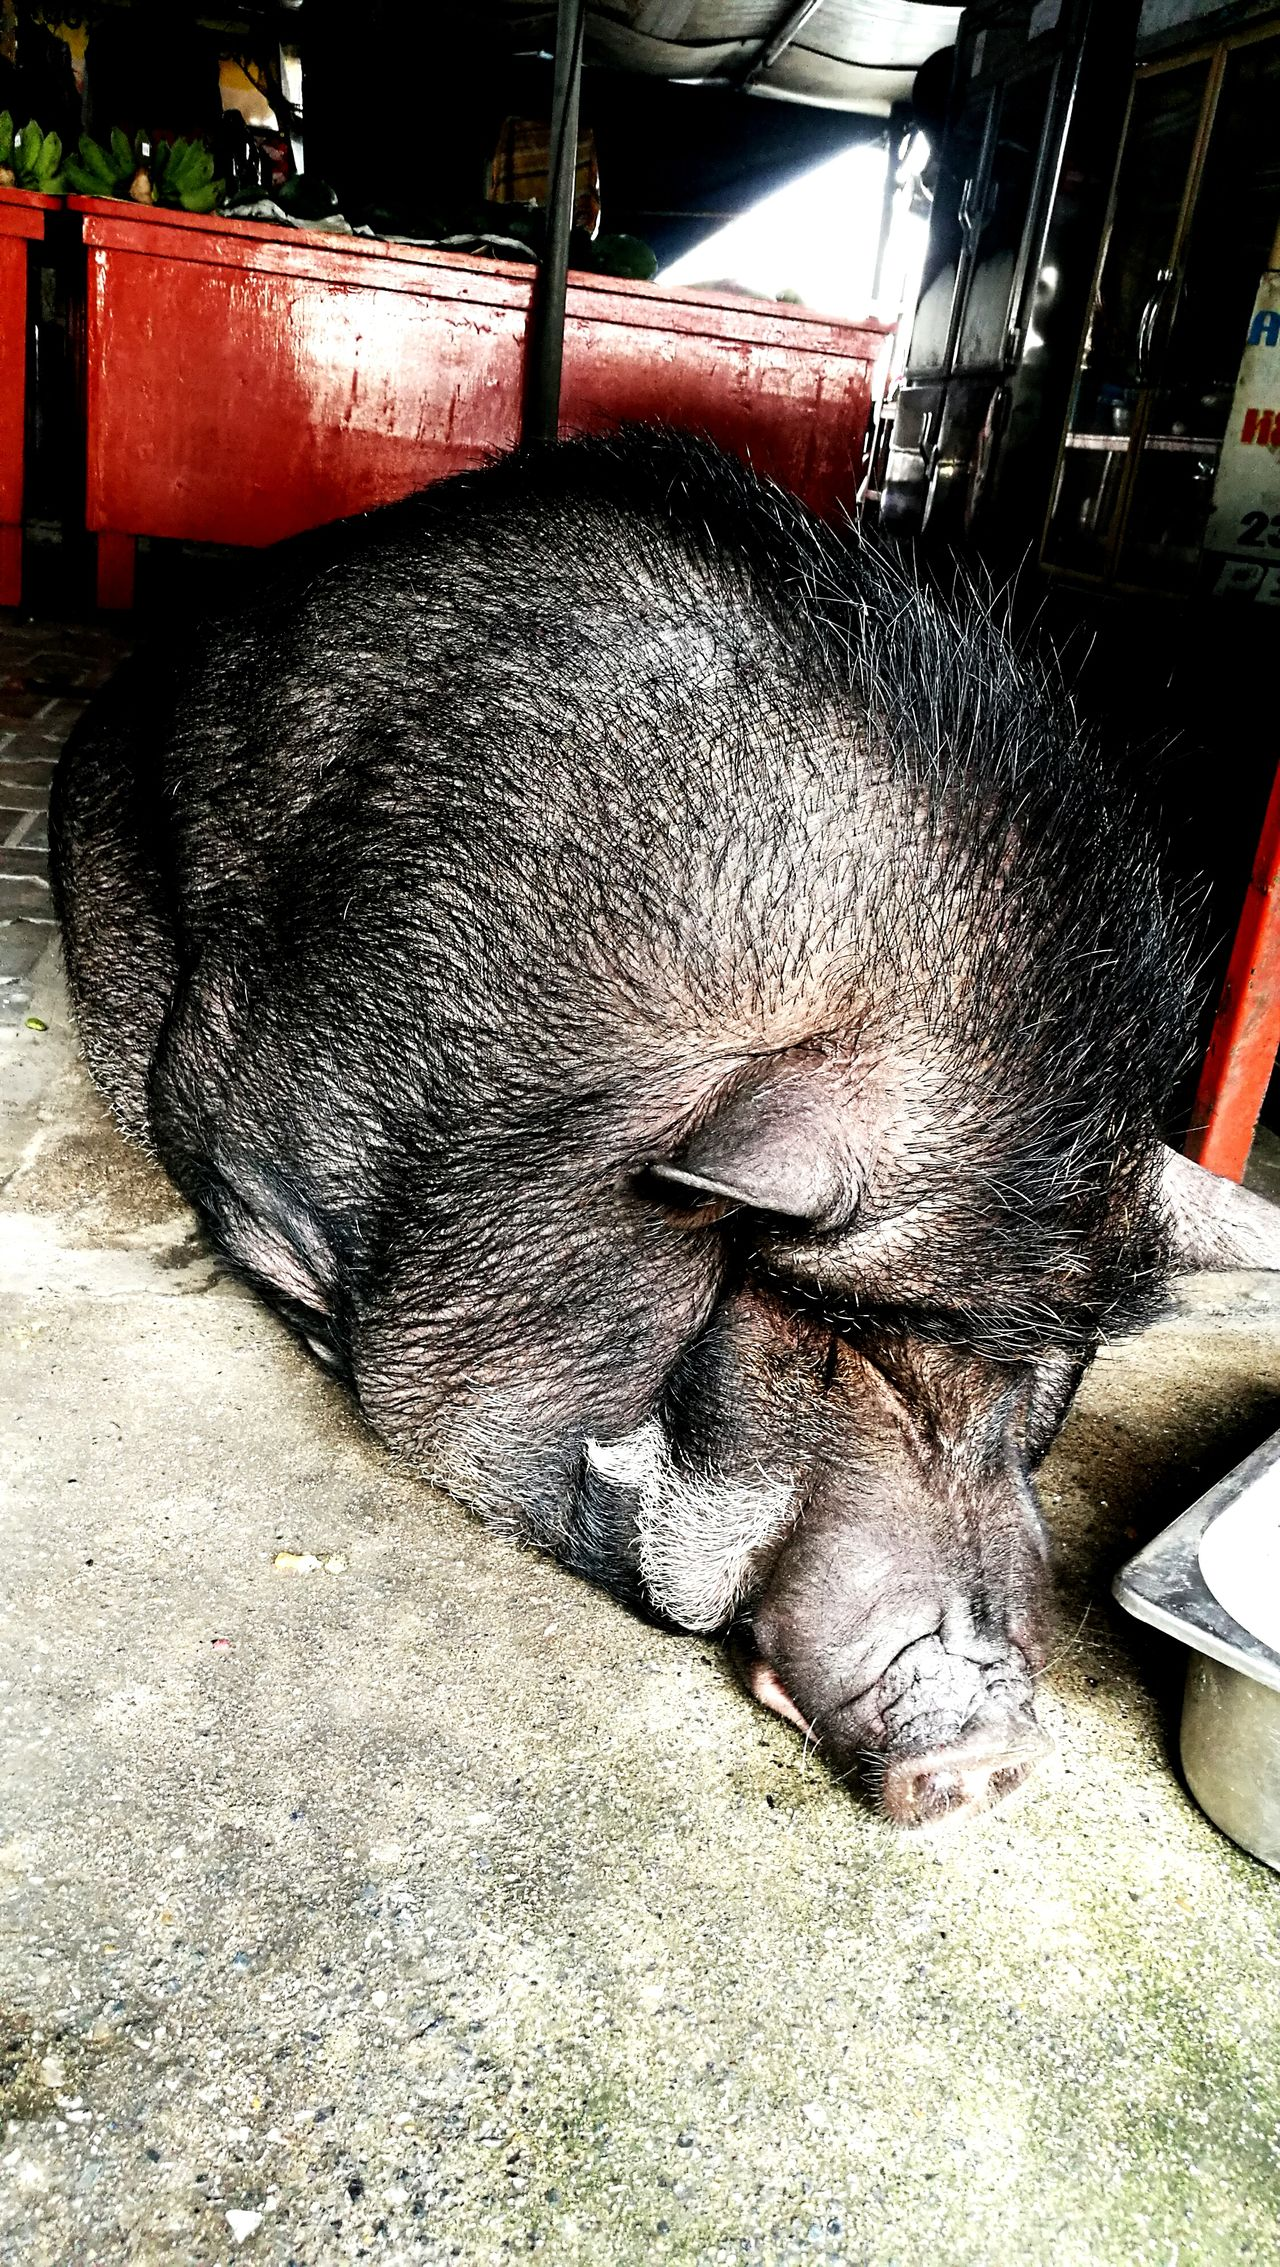 Pig Wildboar Fatpigs Mammal Wild Animals Wild Life